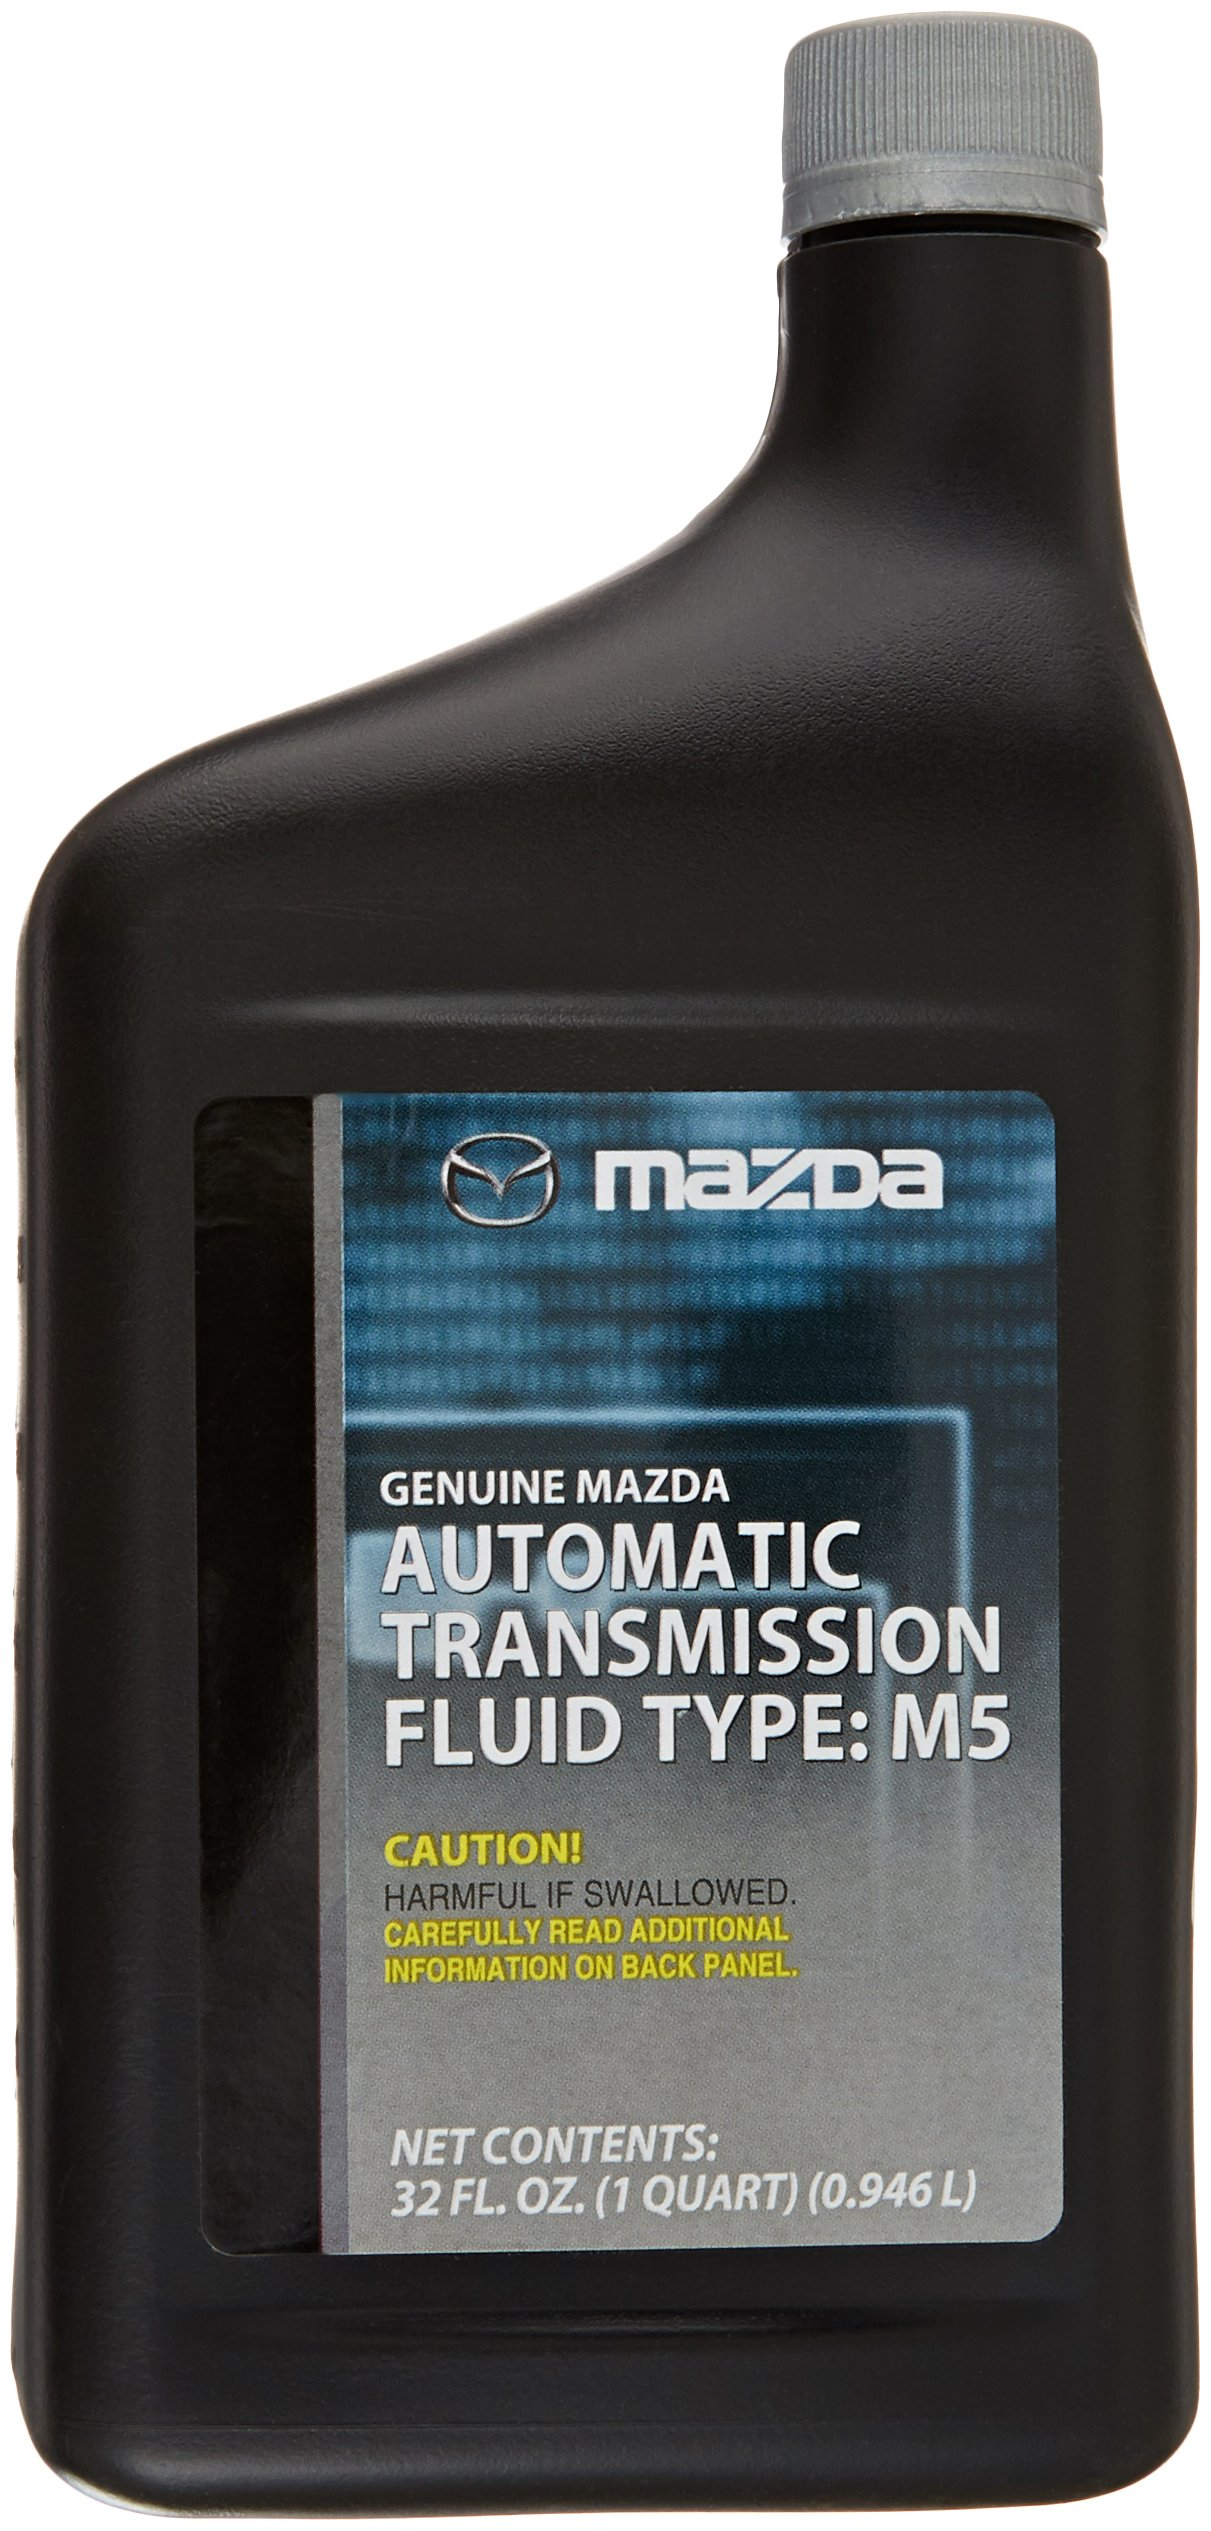 Mazda Genuine 0000-77-112E-01 Transmission Fluid